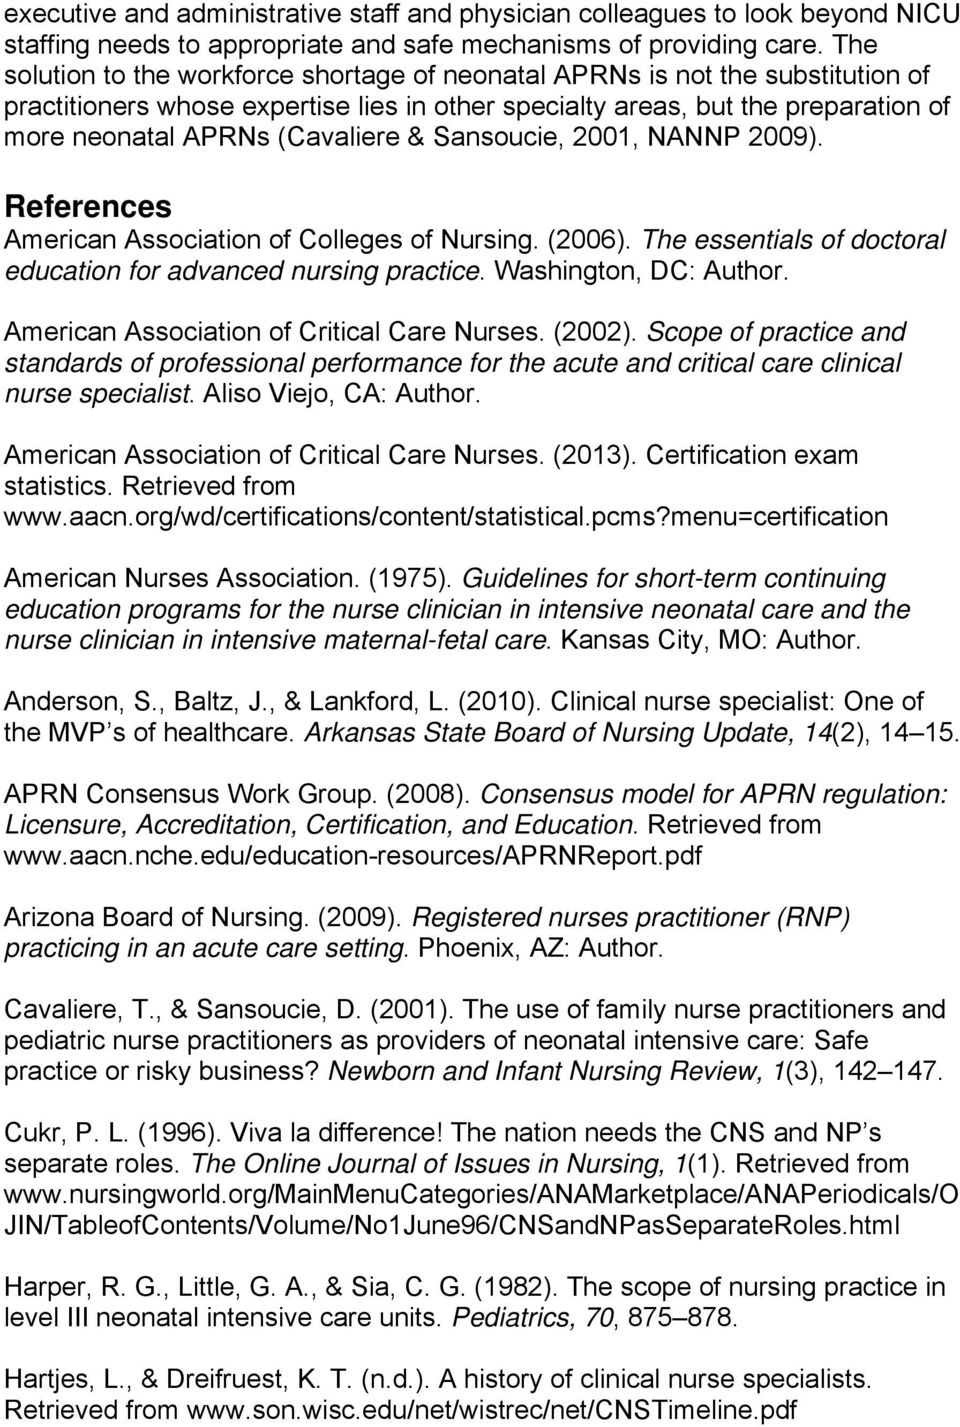 Advanced Practice Registered Nurse Role Preparation And Scope Of